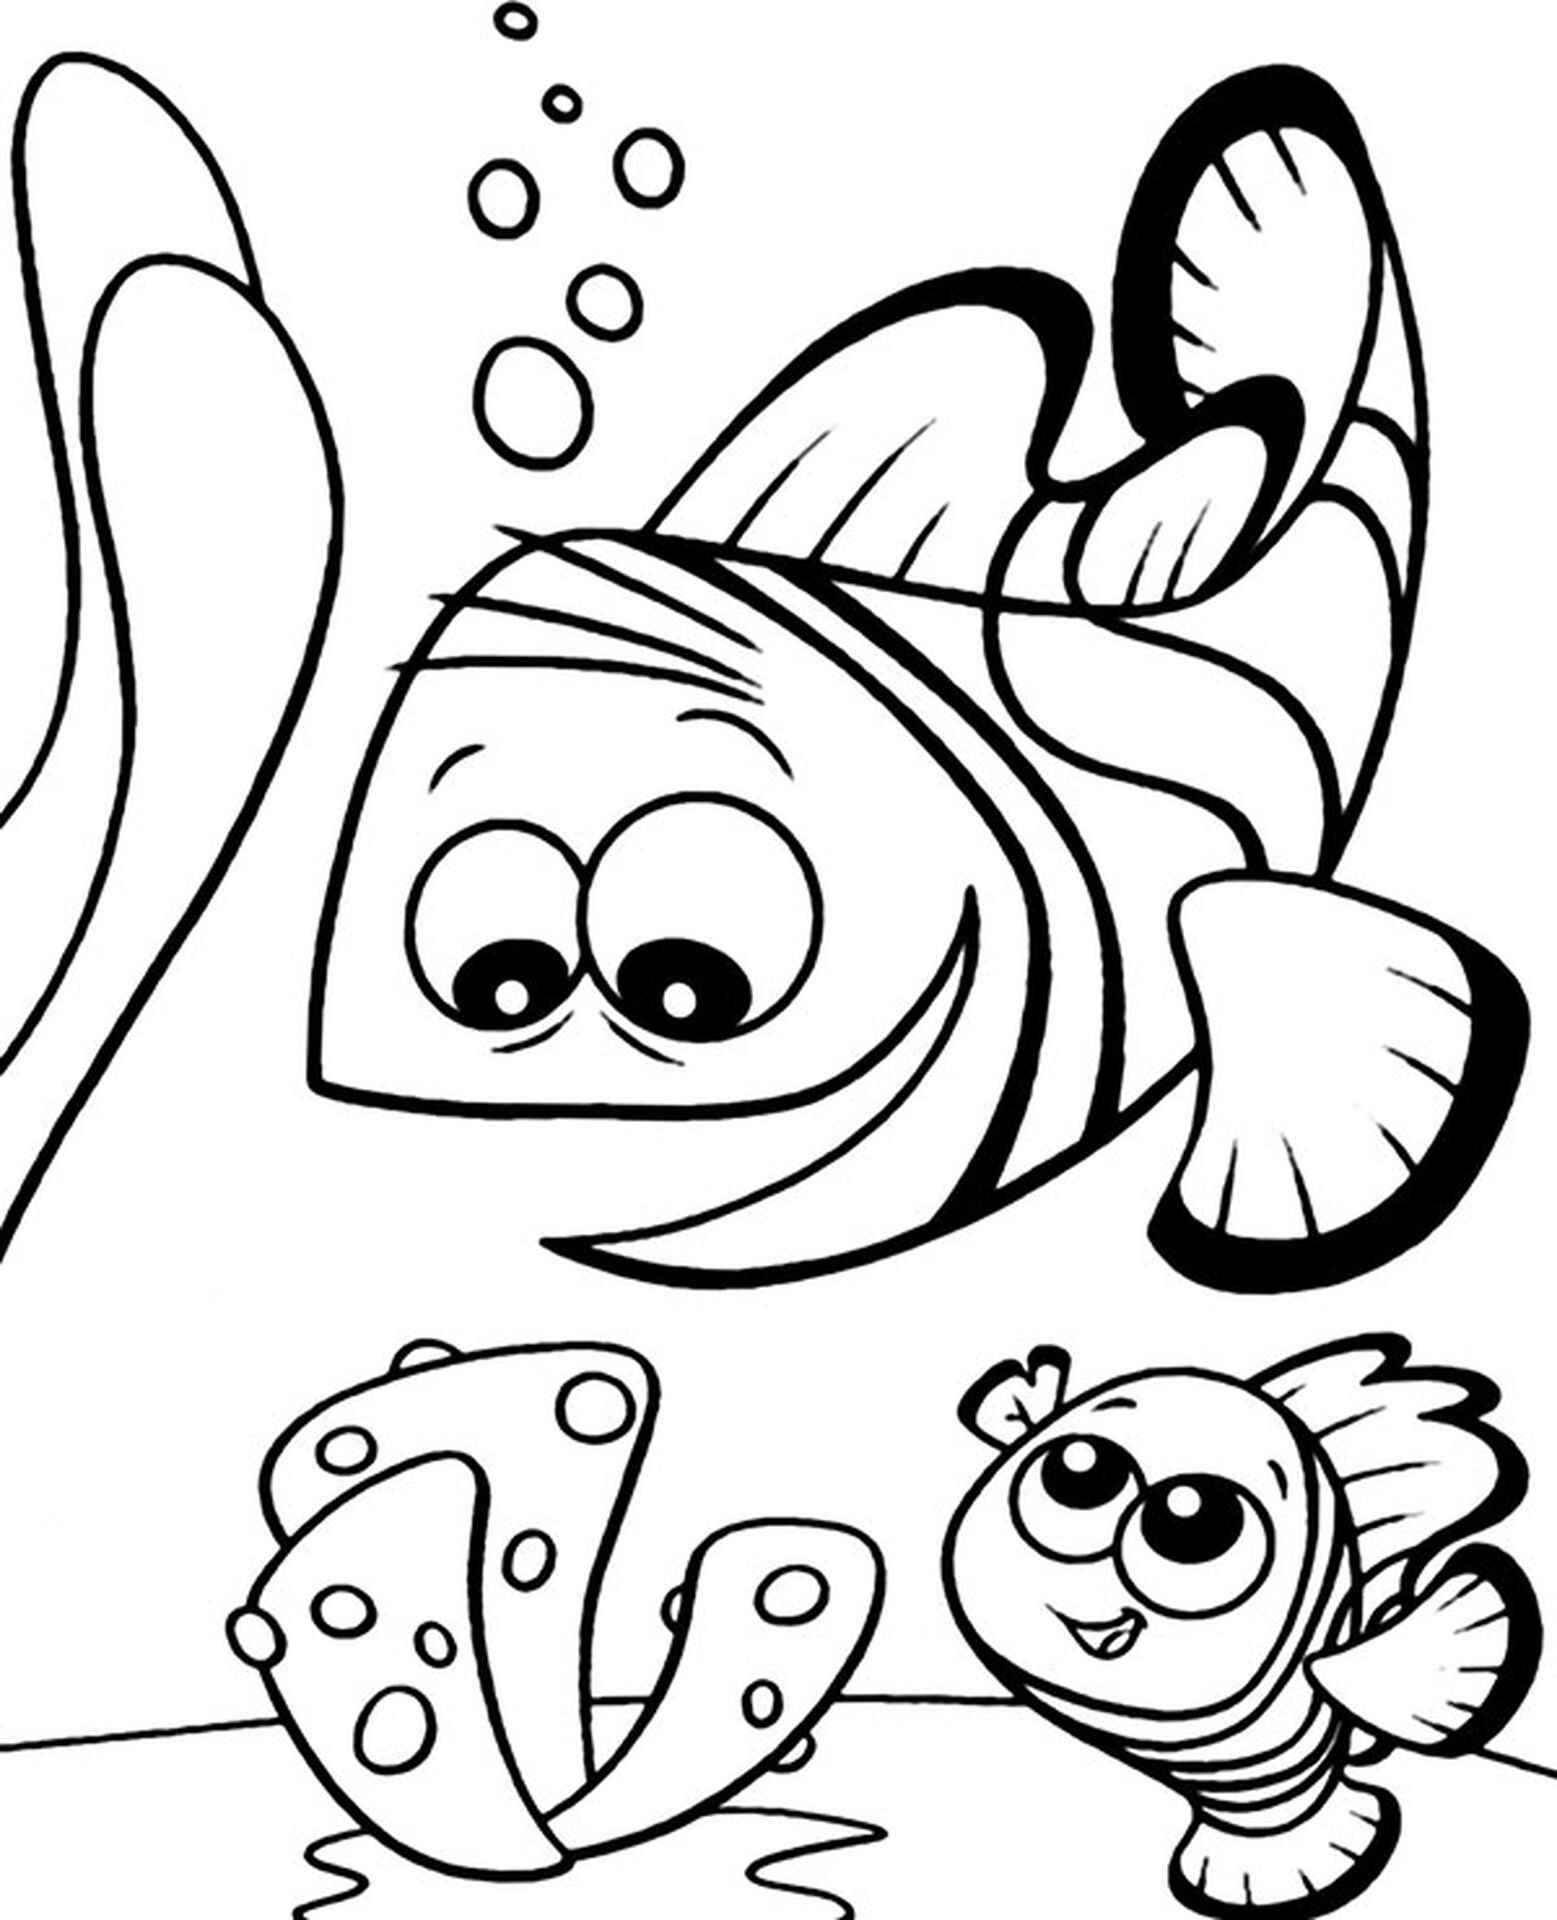 Easy Coloring Page Fish